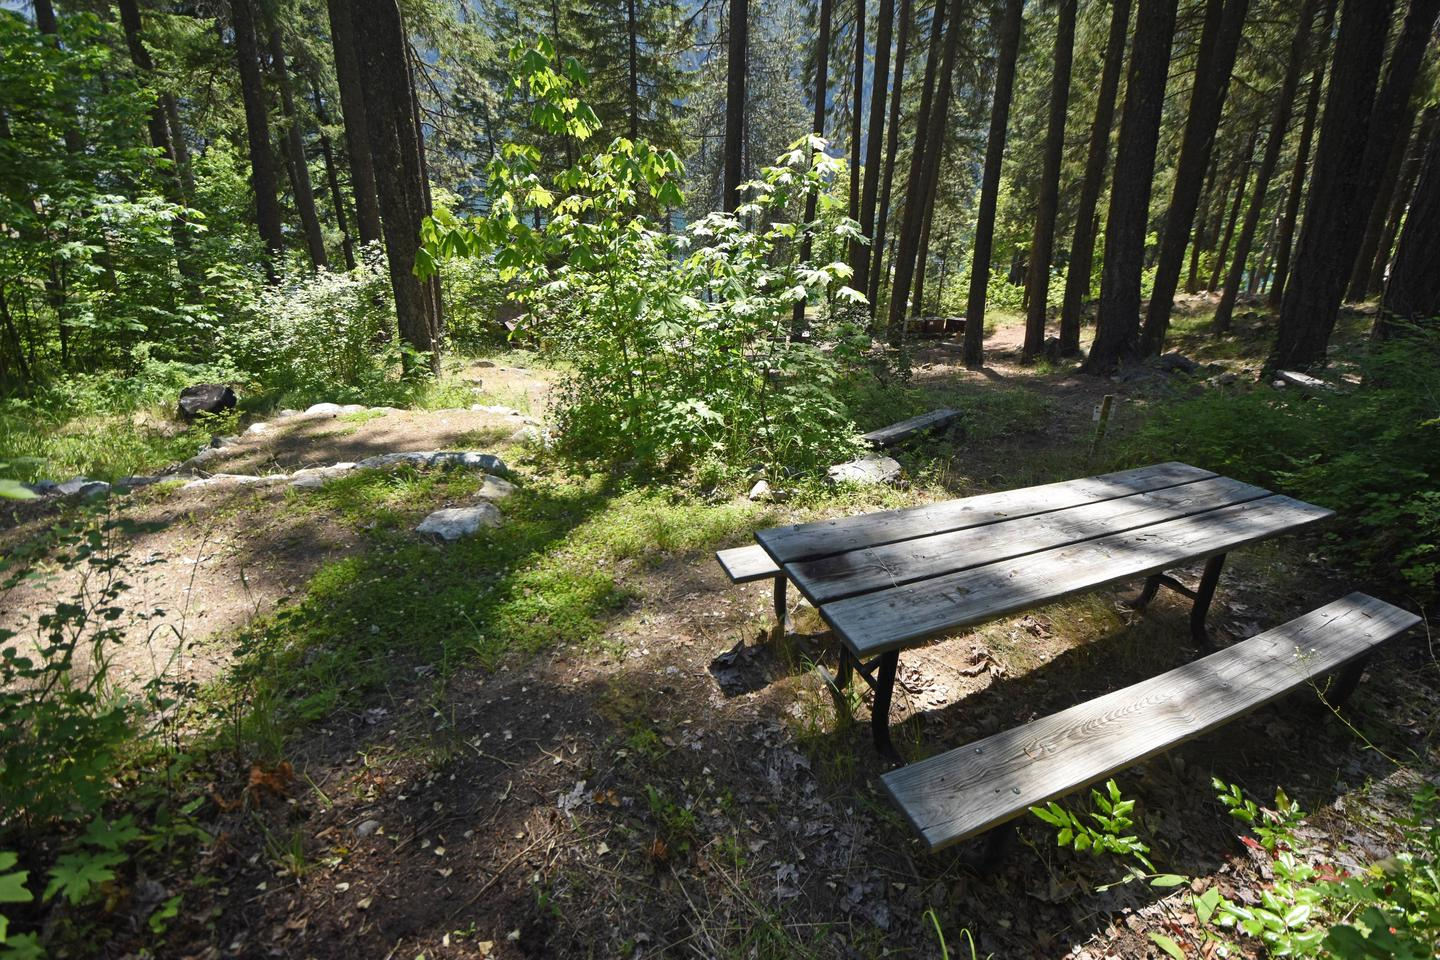 View of campsite with picnic table and tent pads.Lakeview Site 2